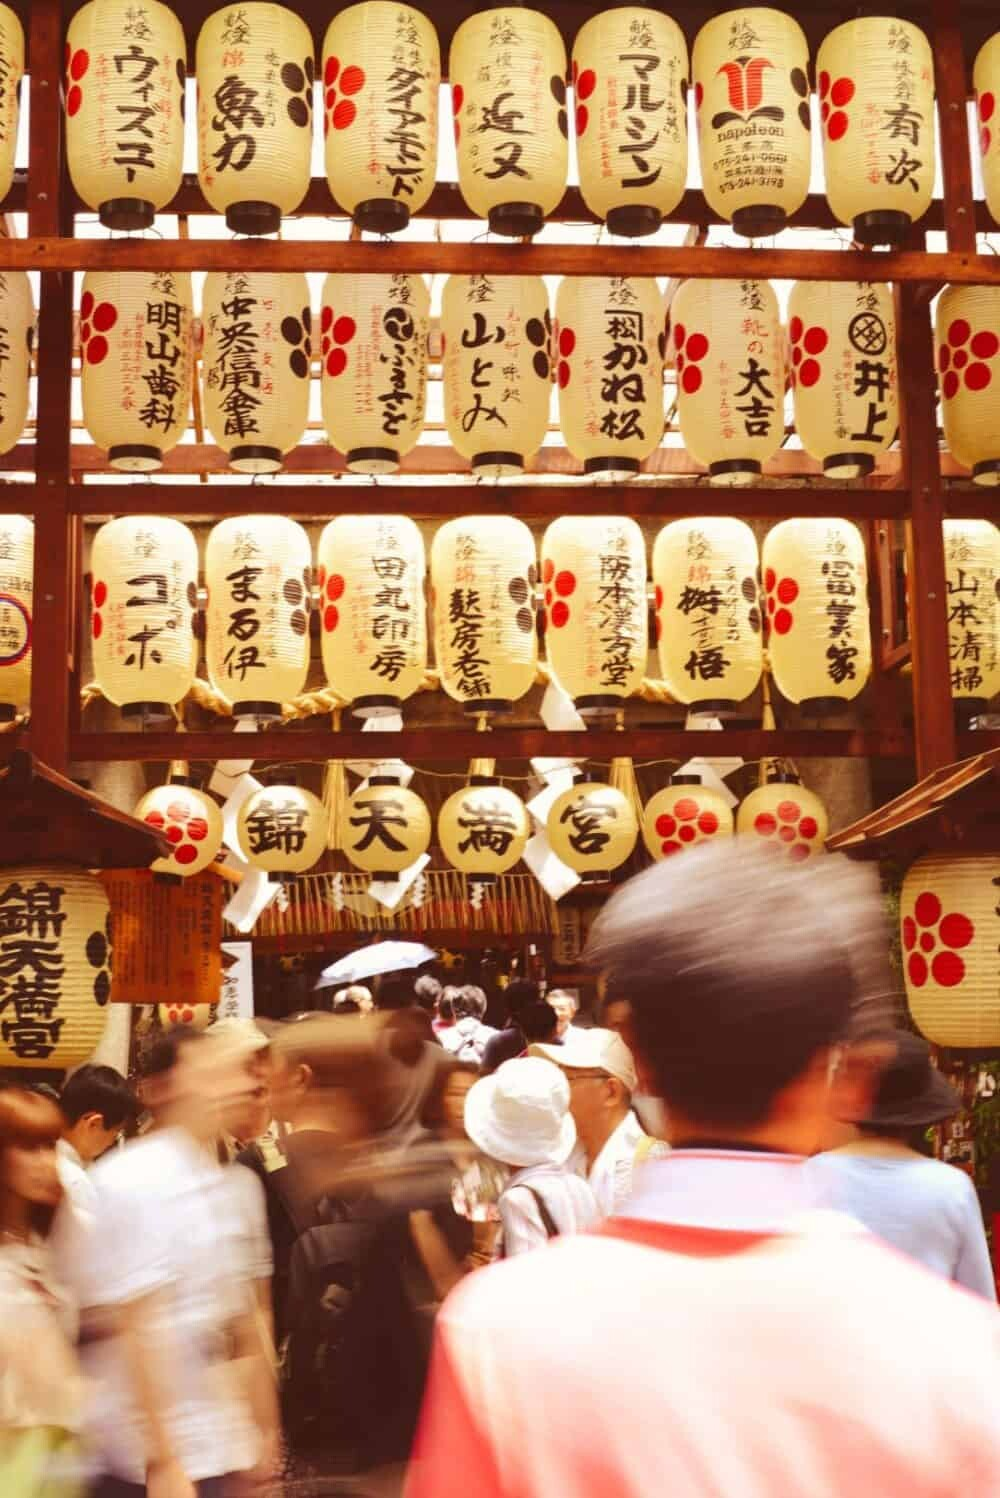 Kyoto Photography Locations, Japan travel guide by The Wandering Lens